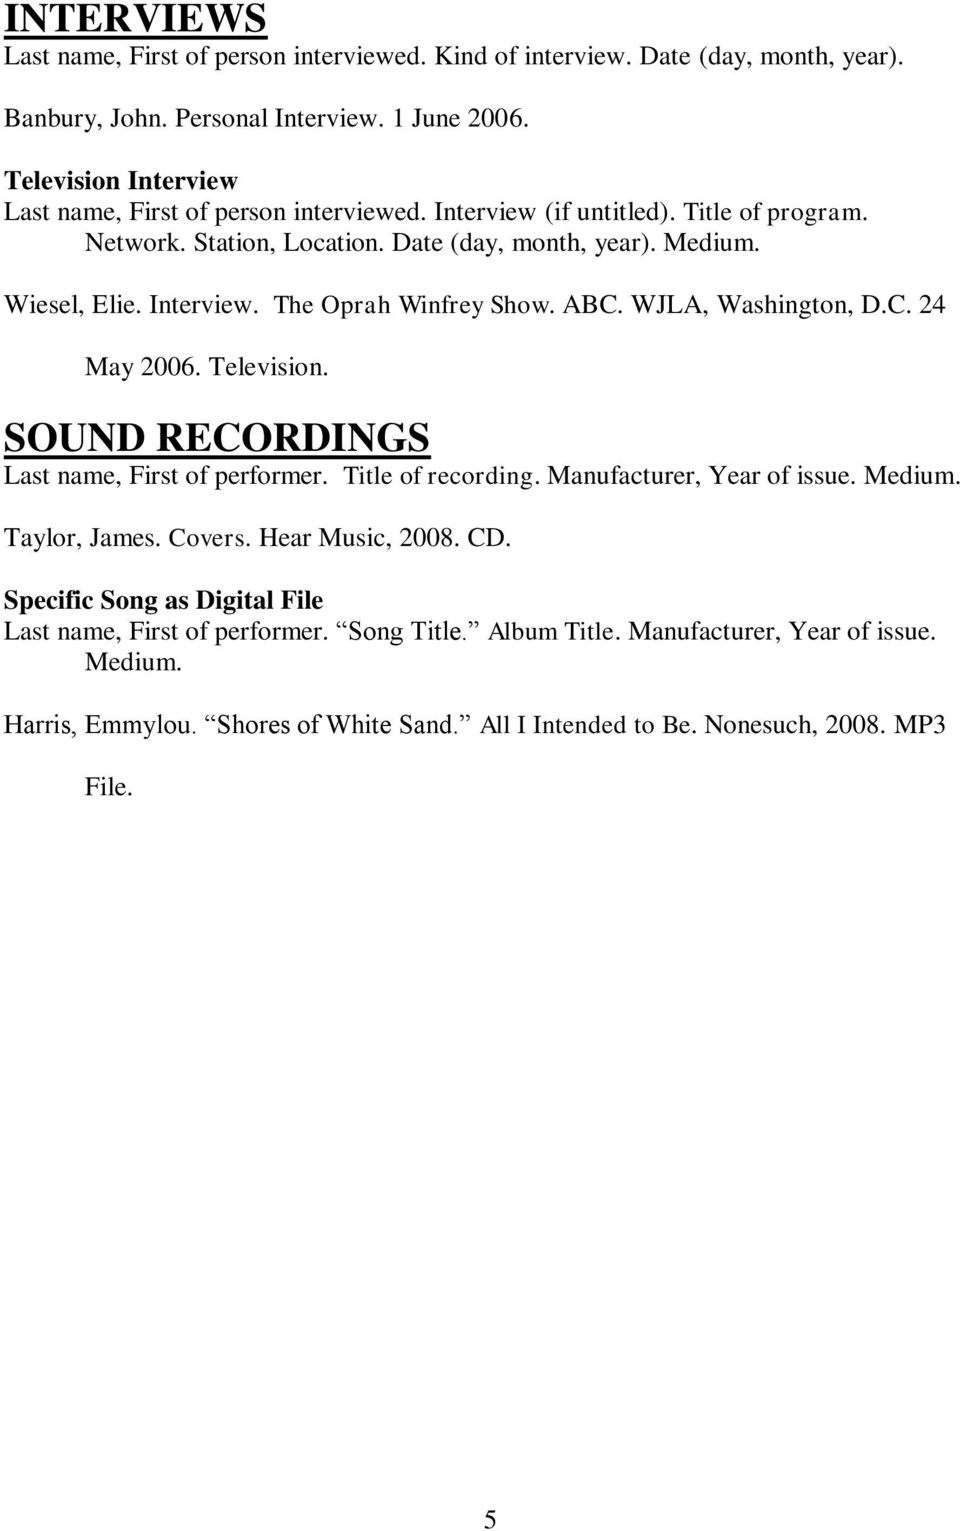 ABC. WJLA, Washington, D.C. 24 May 2006. Television. SOUND RECORDINGS Last name, First of performer. Title of recording. Manufacturer, Year of issue. Medium. Taylor, James. Covers.